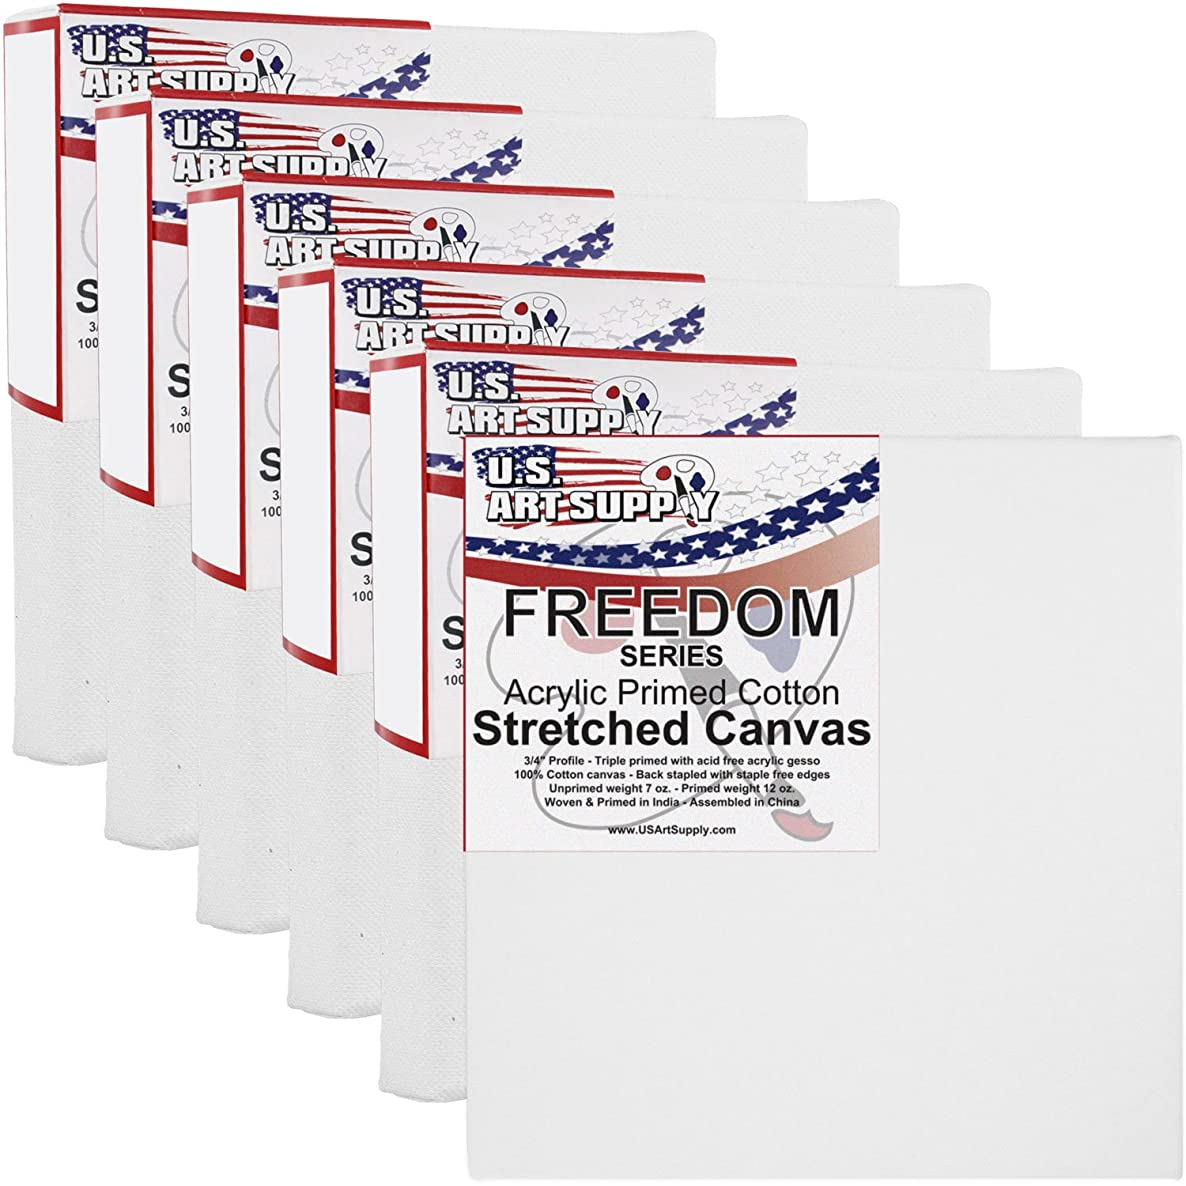 US Art Supply 4 x 4 inch Professional Quality Acid Free Stretched Canvas 6-Pack - 3/4 Profile 12 Ounce Primed Gesso - (1 Full Case of 6 Single Canvases)